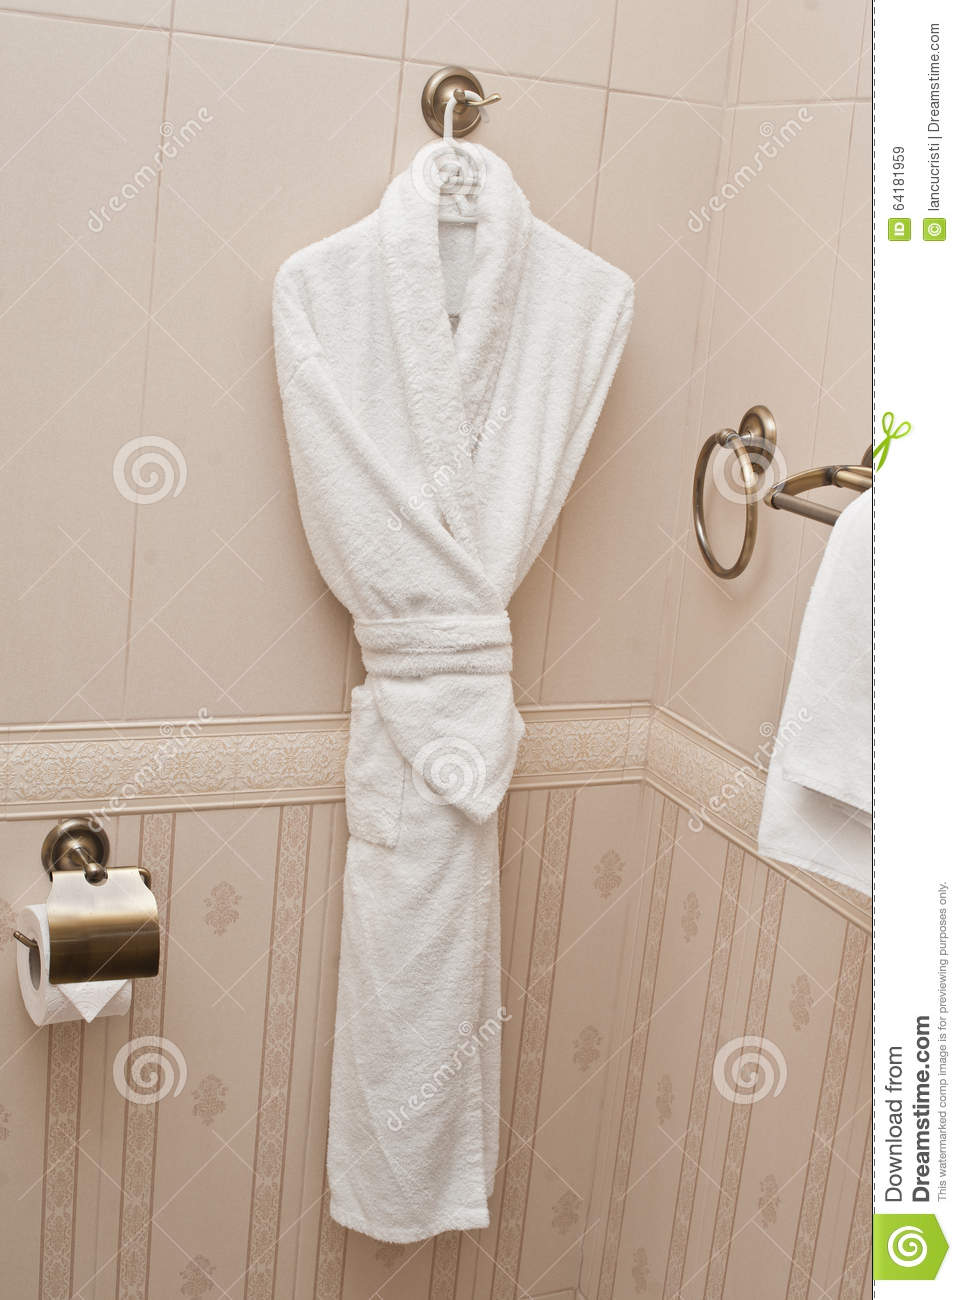 White fresh bath robe hang on bathroom wall white shower for Bathroom pictures to hang on wall